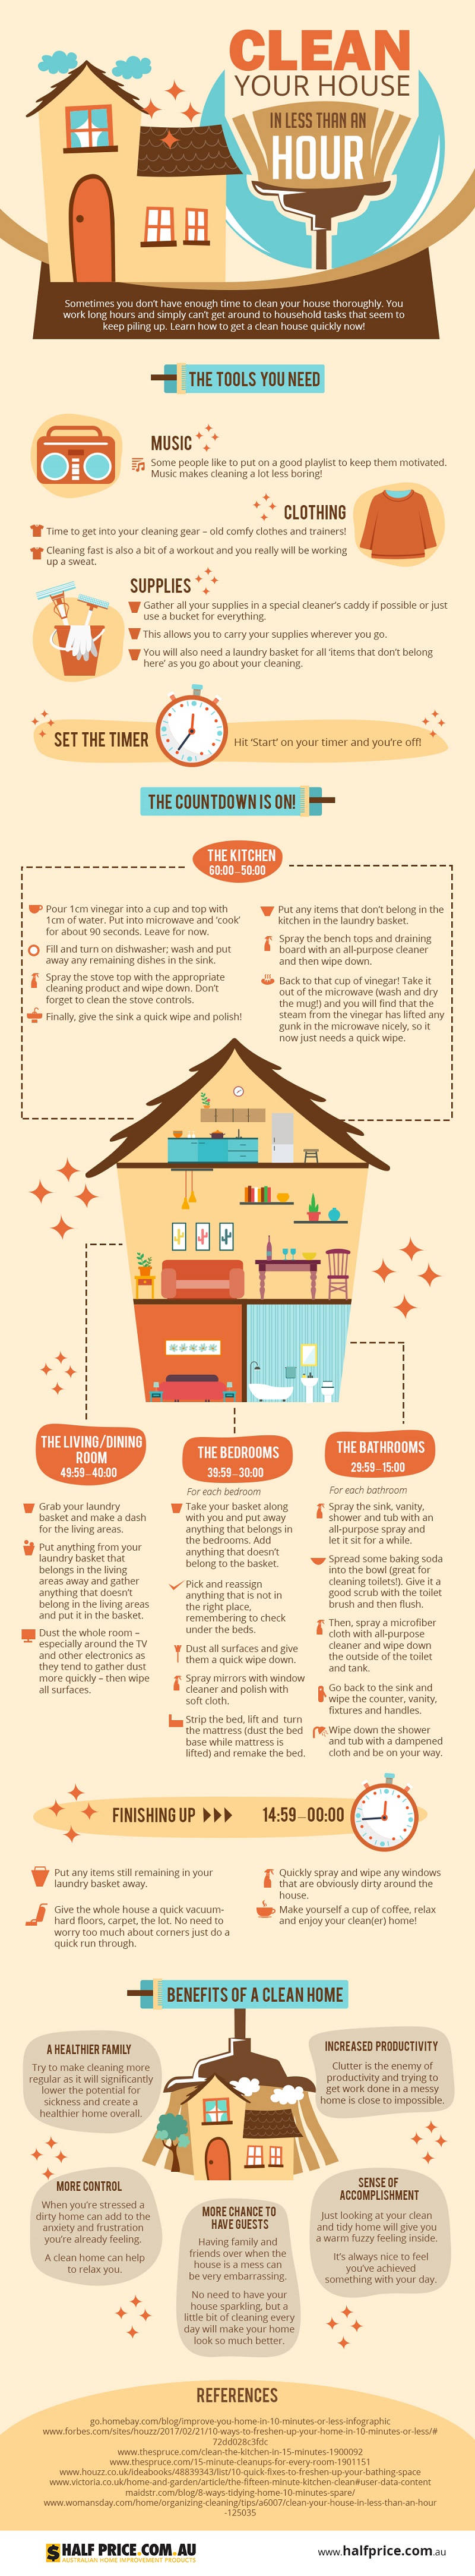 how to clearn your house in less than an Hour